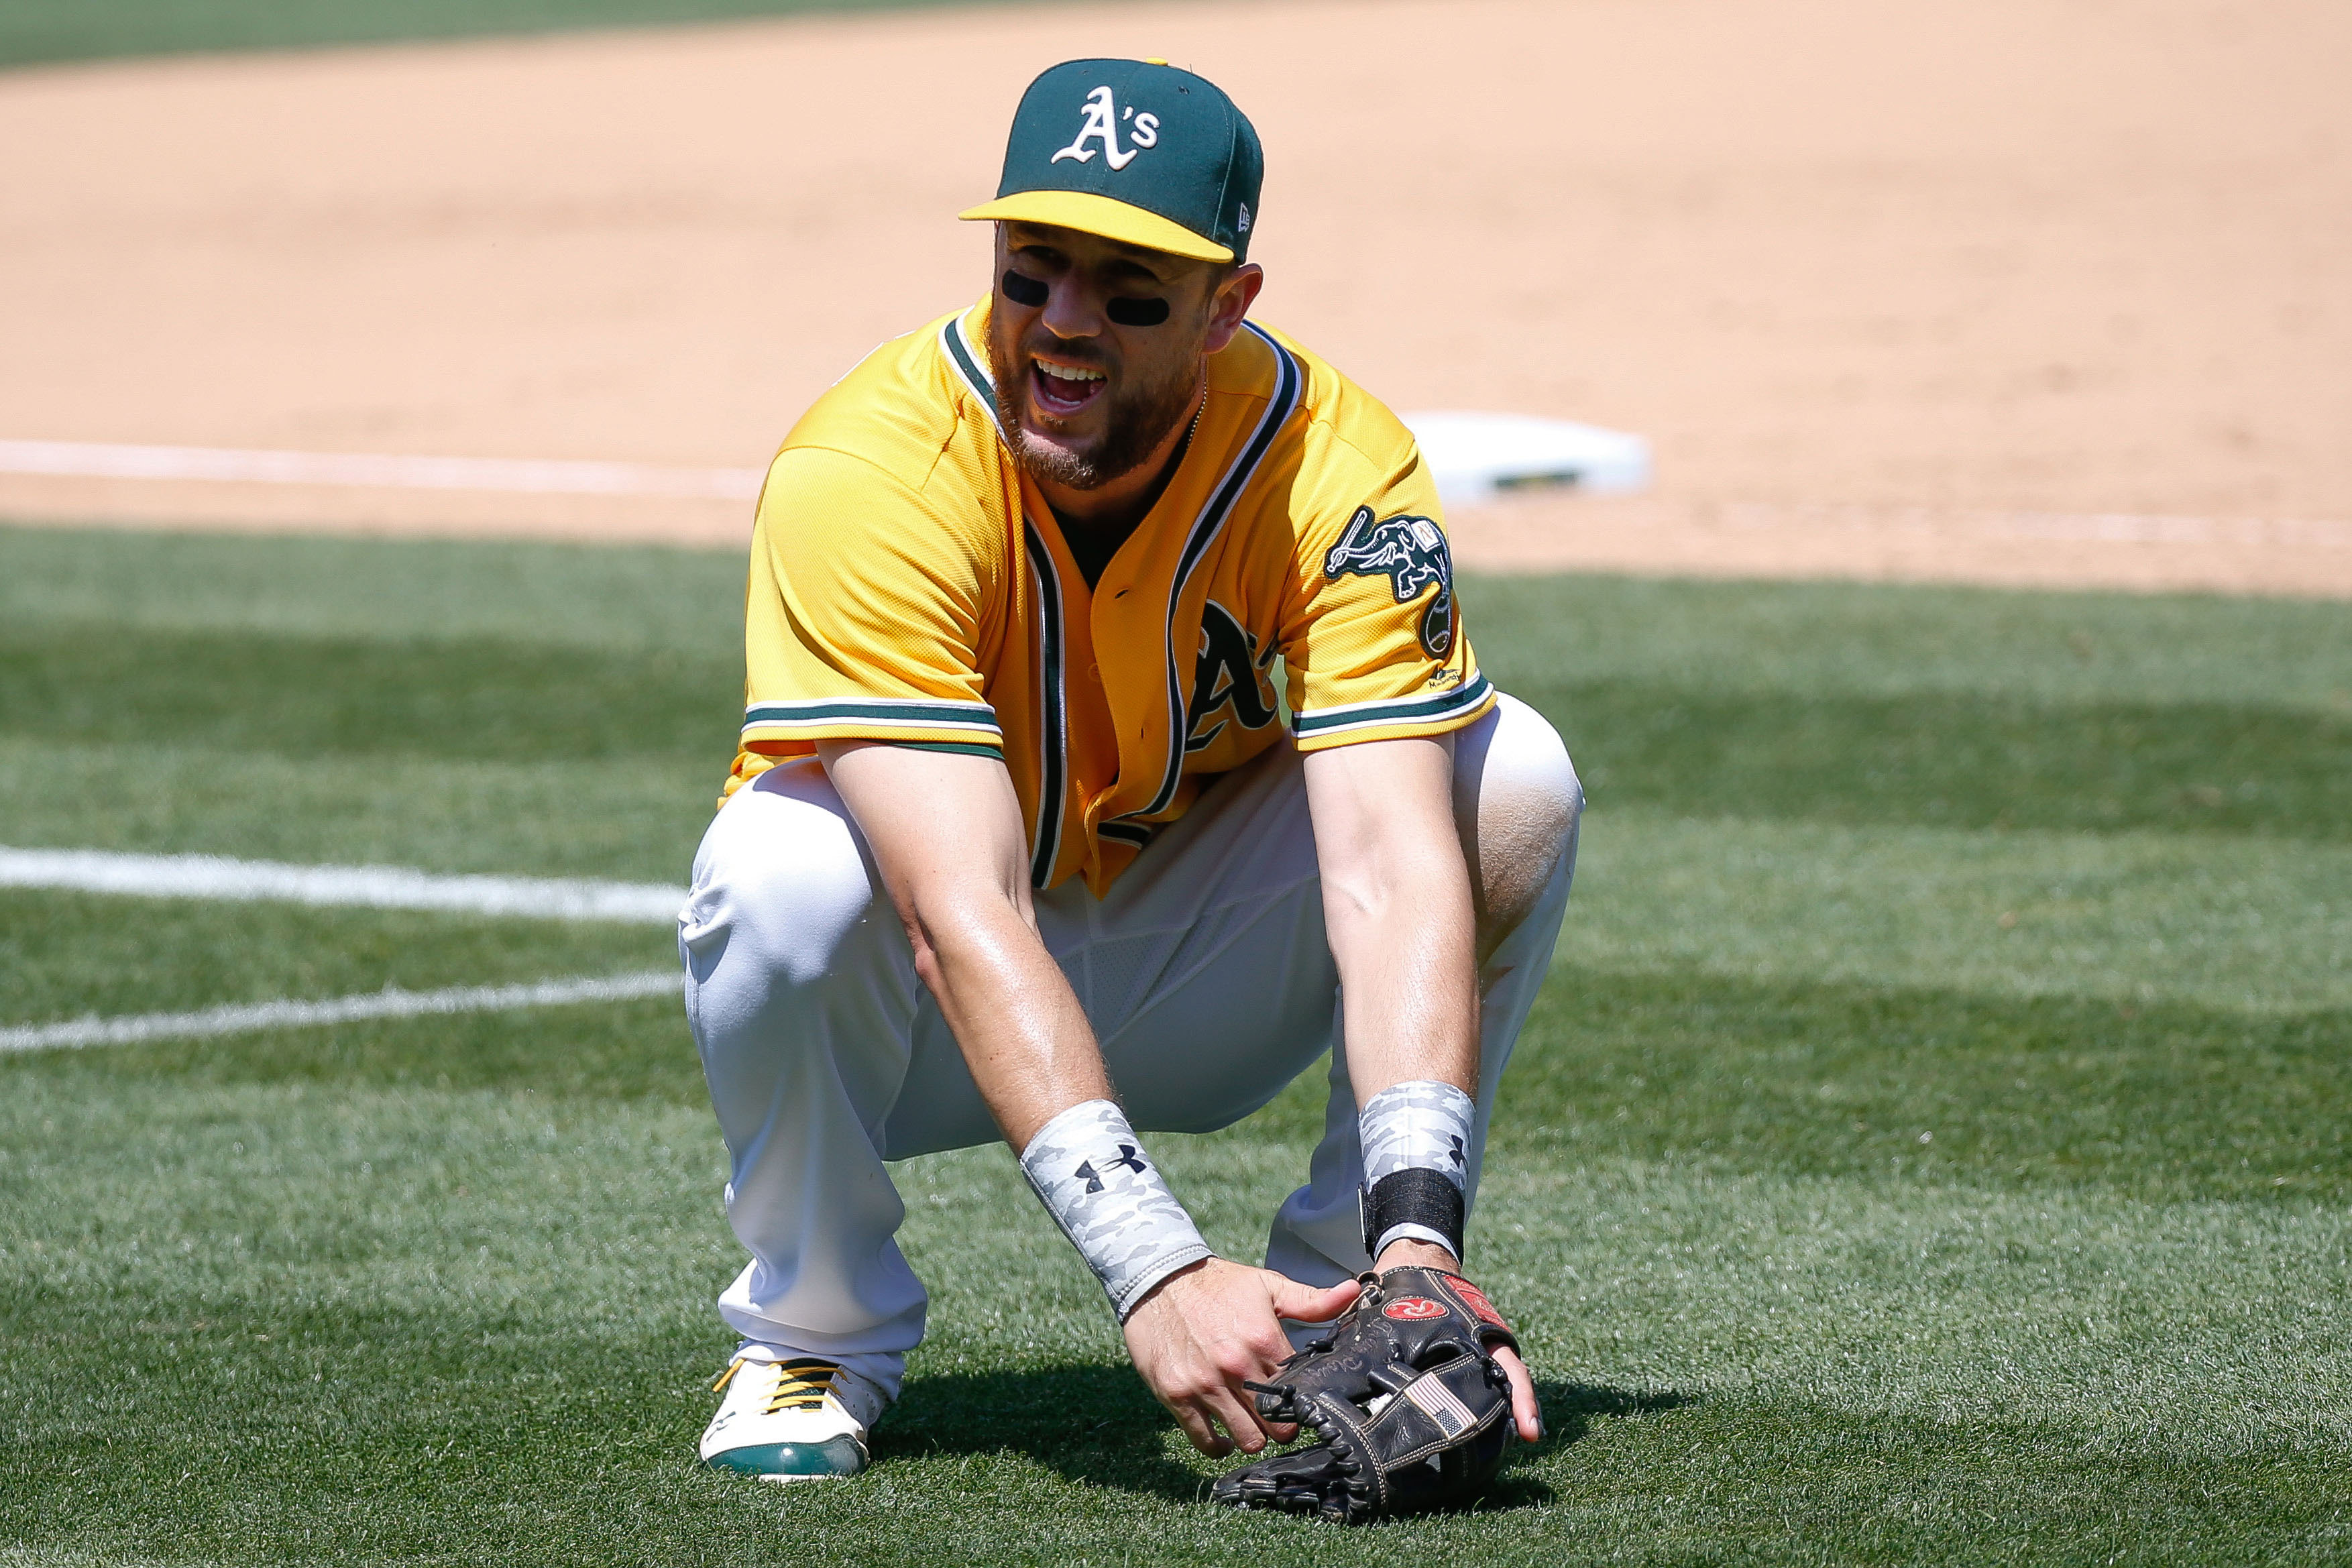 10072170-mlb-miami-marlins-at-oakland-athletics